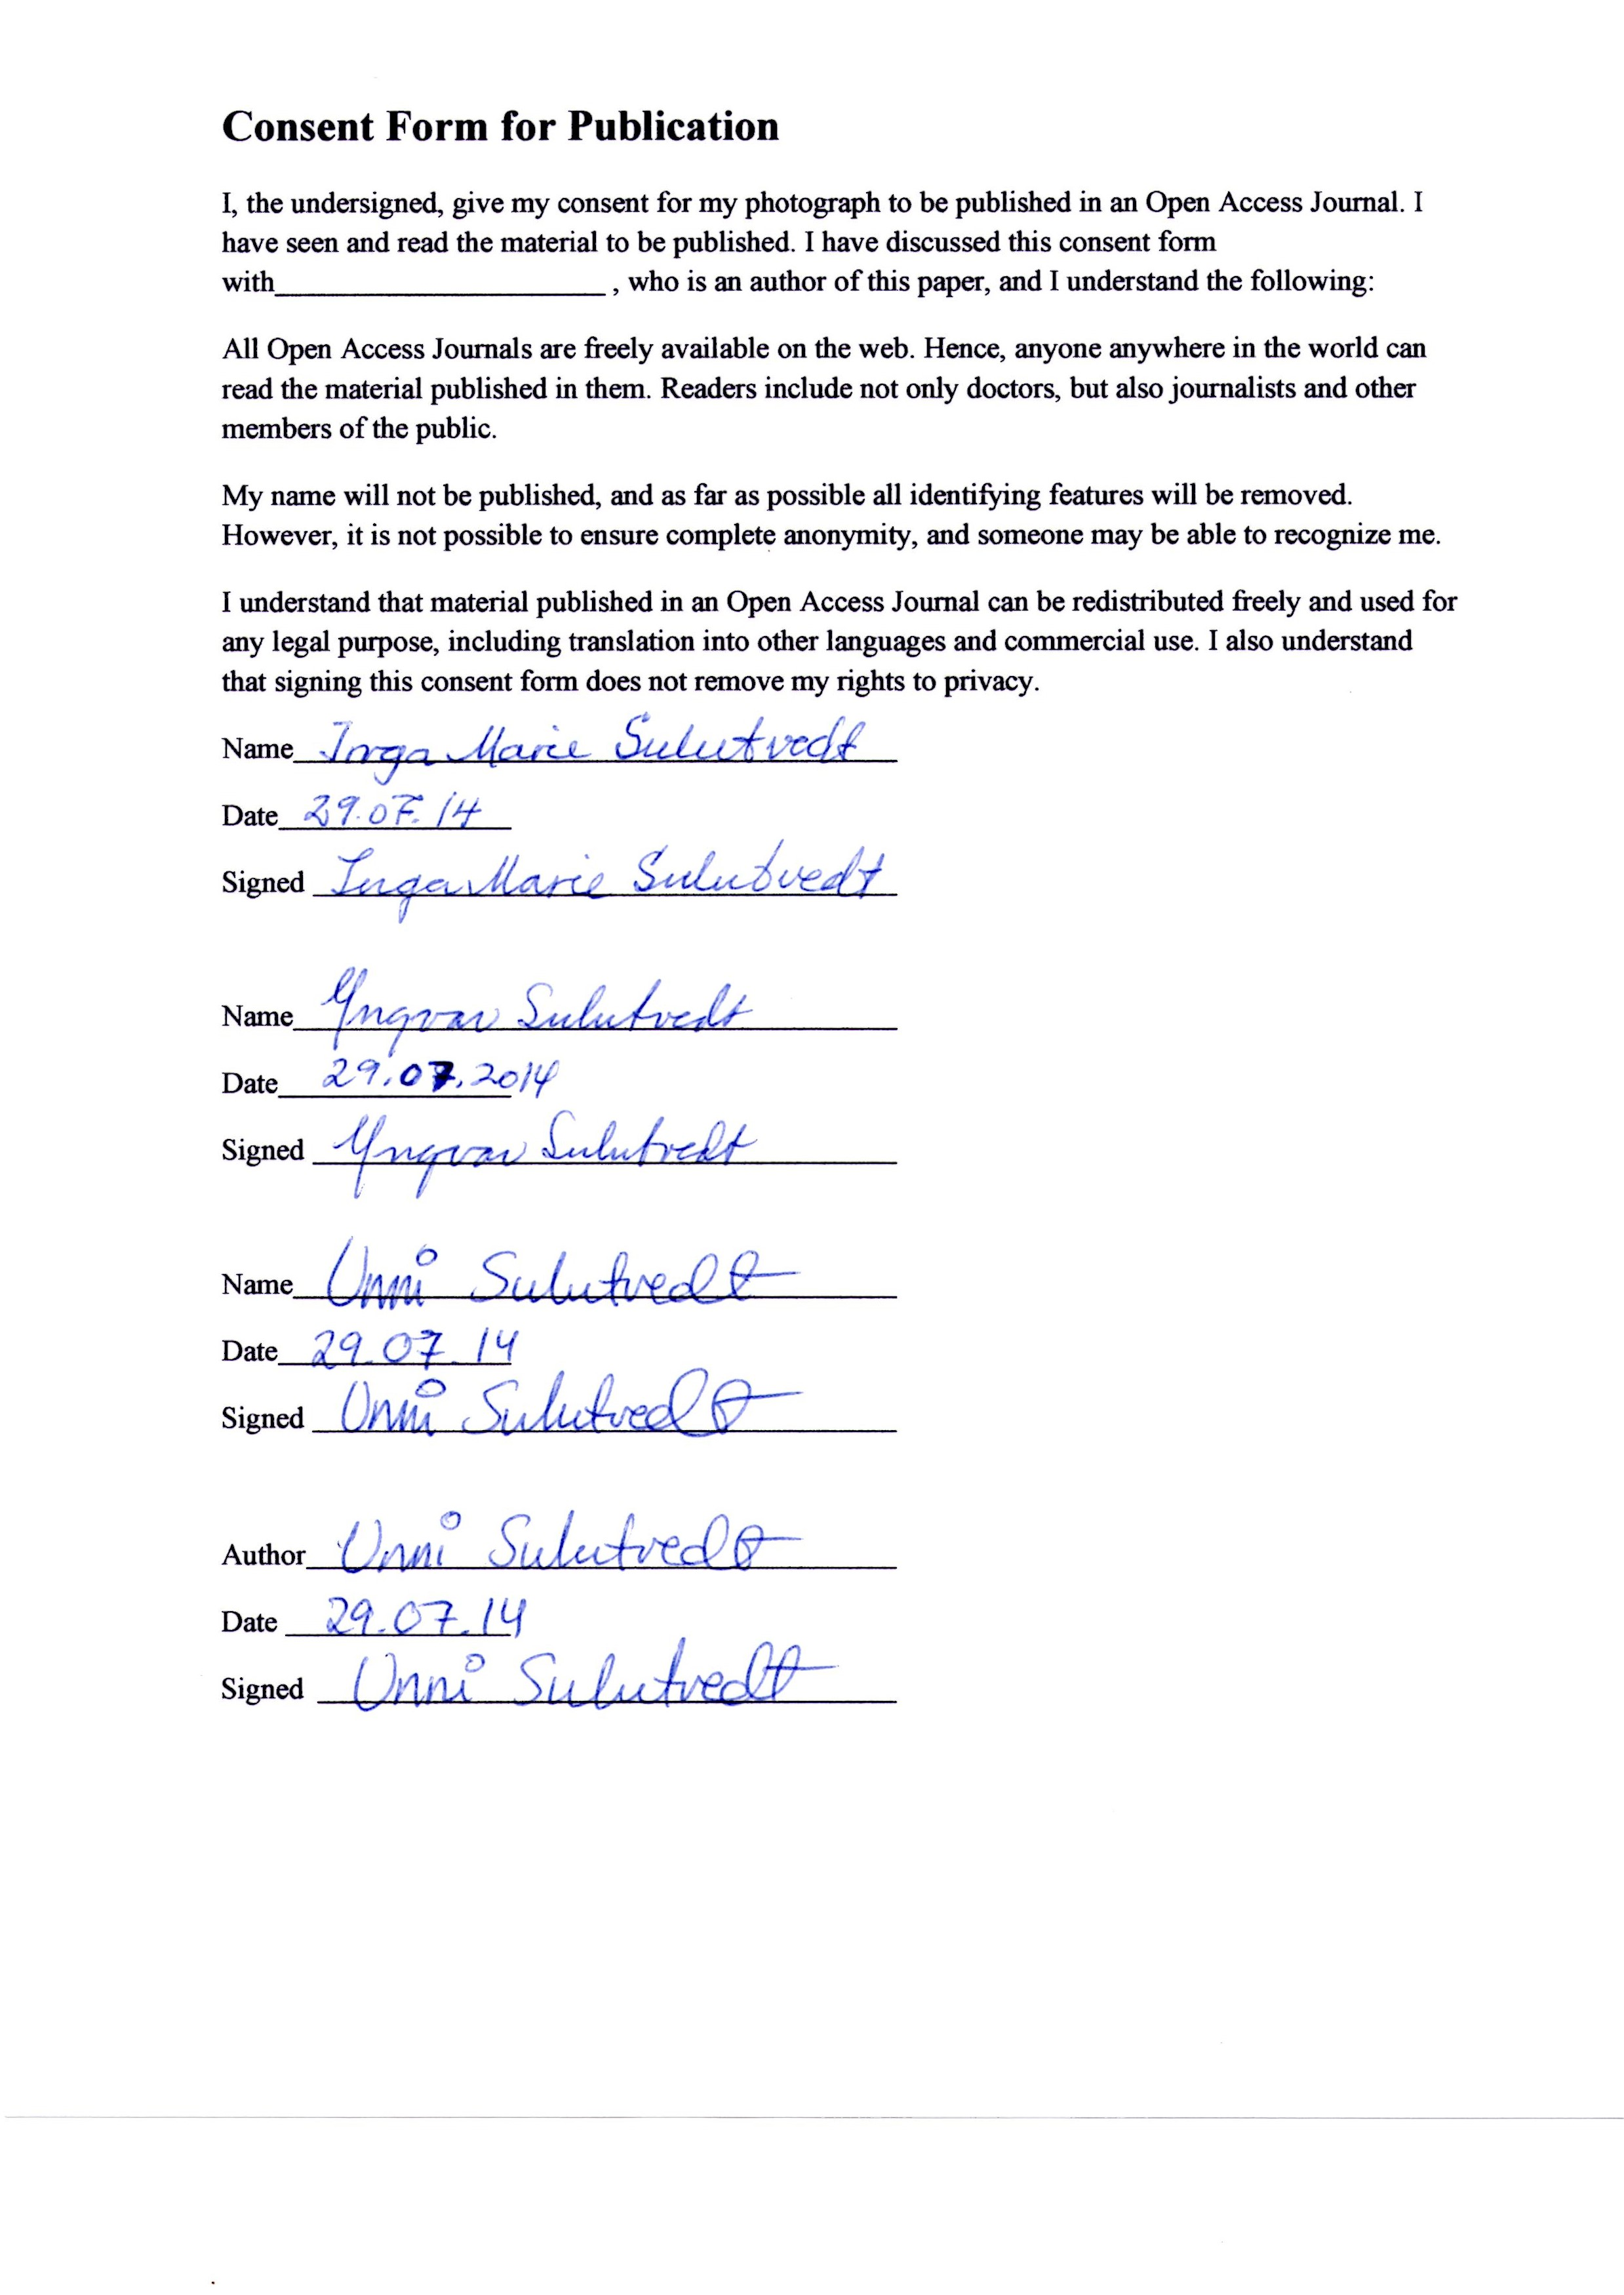 realtor authorization letter authorization letters are letters – Travel Consent Form Template